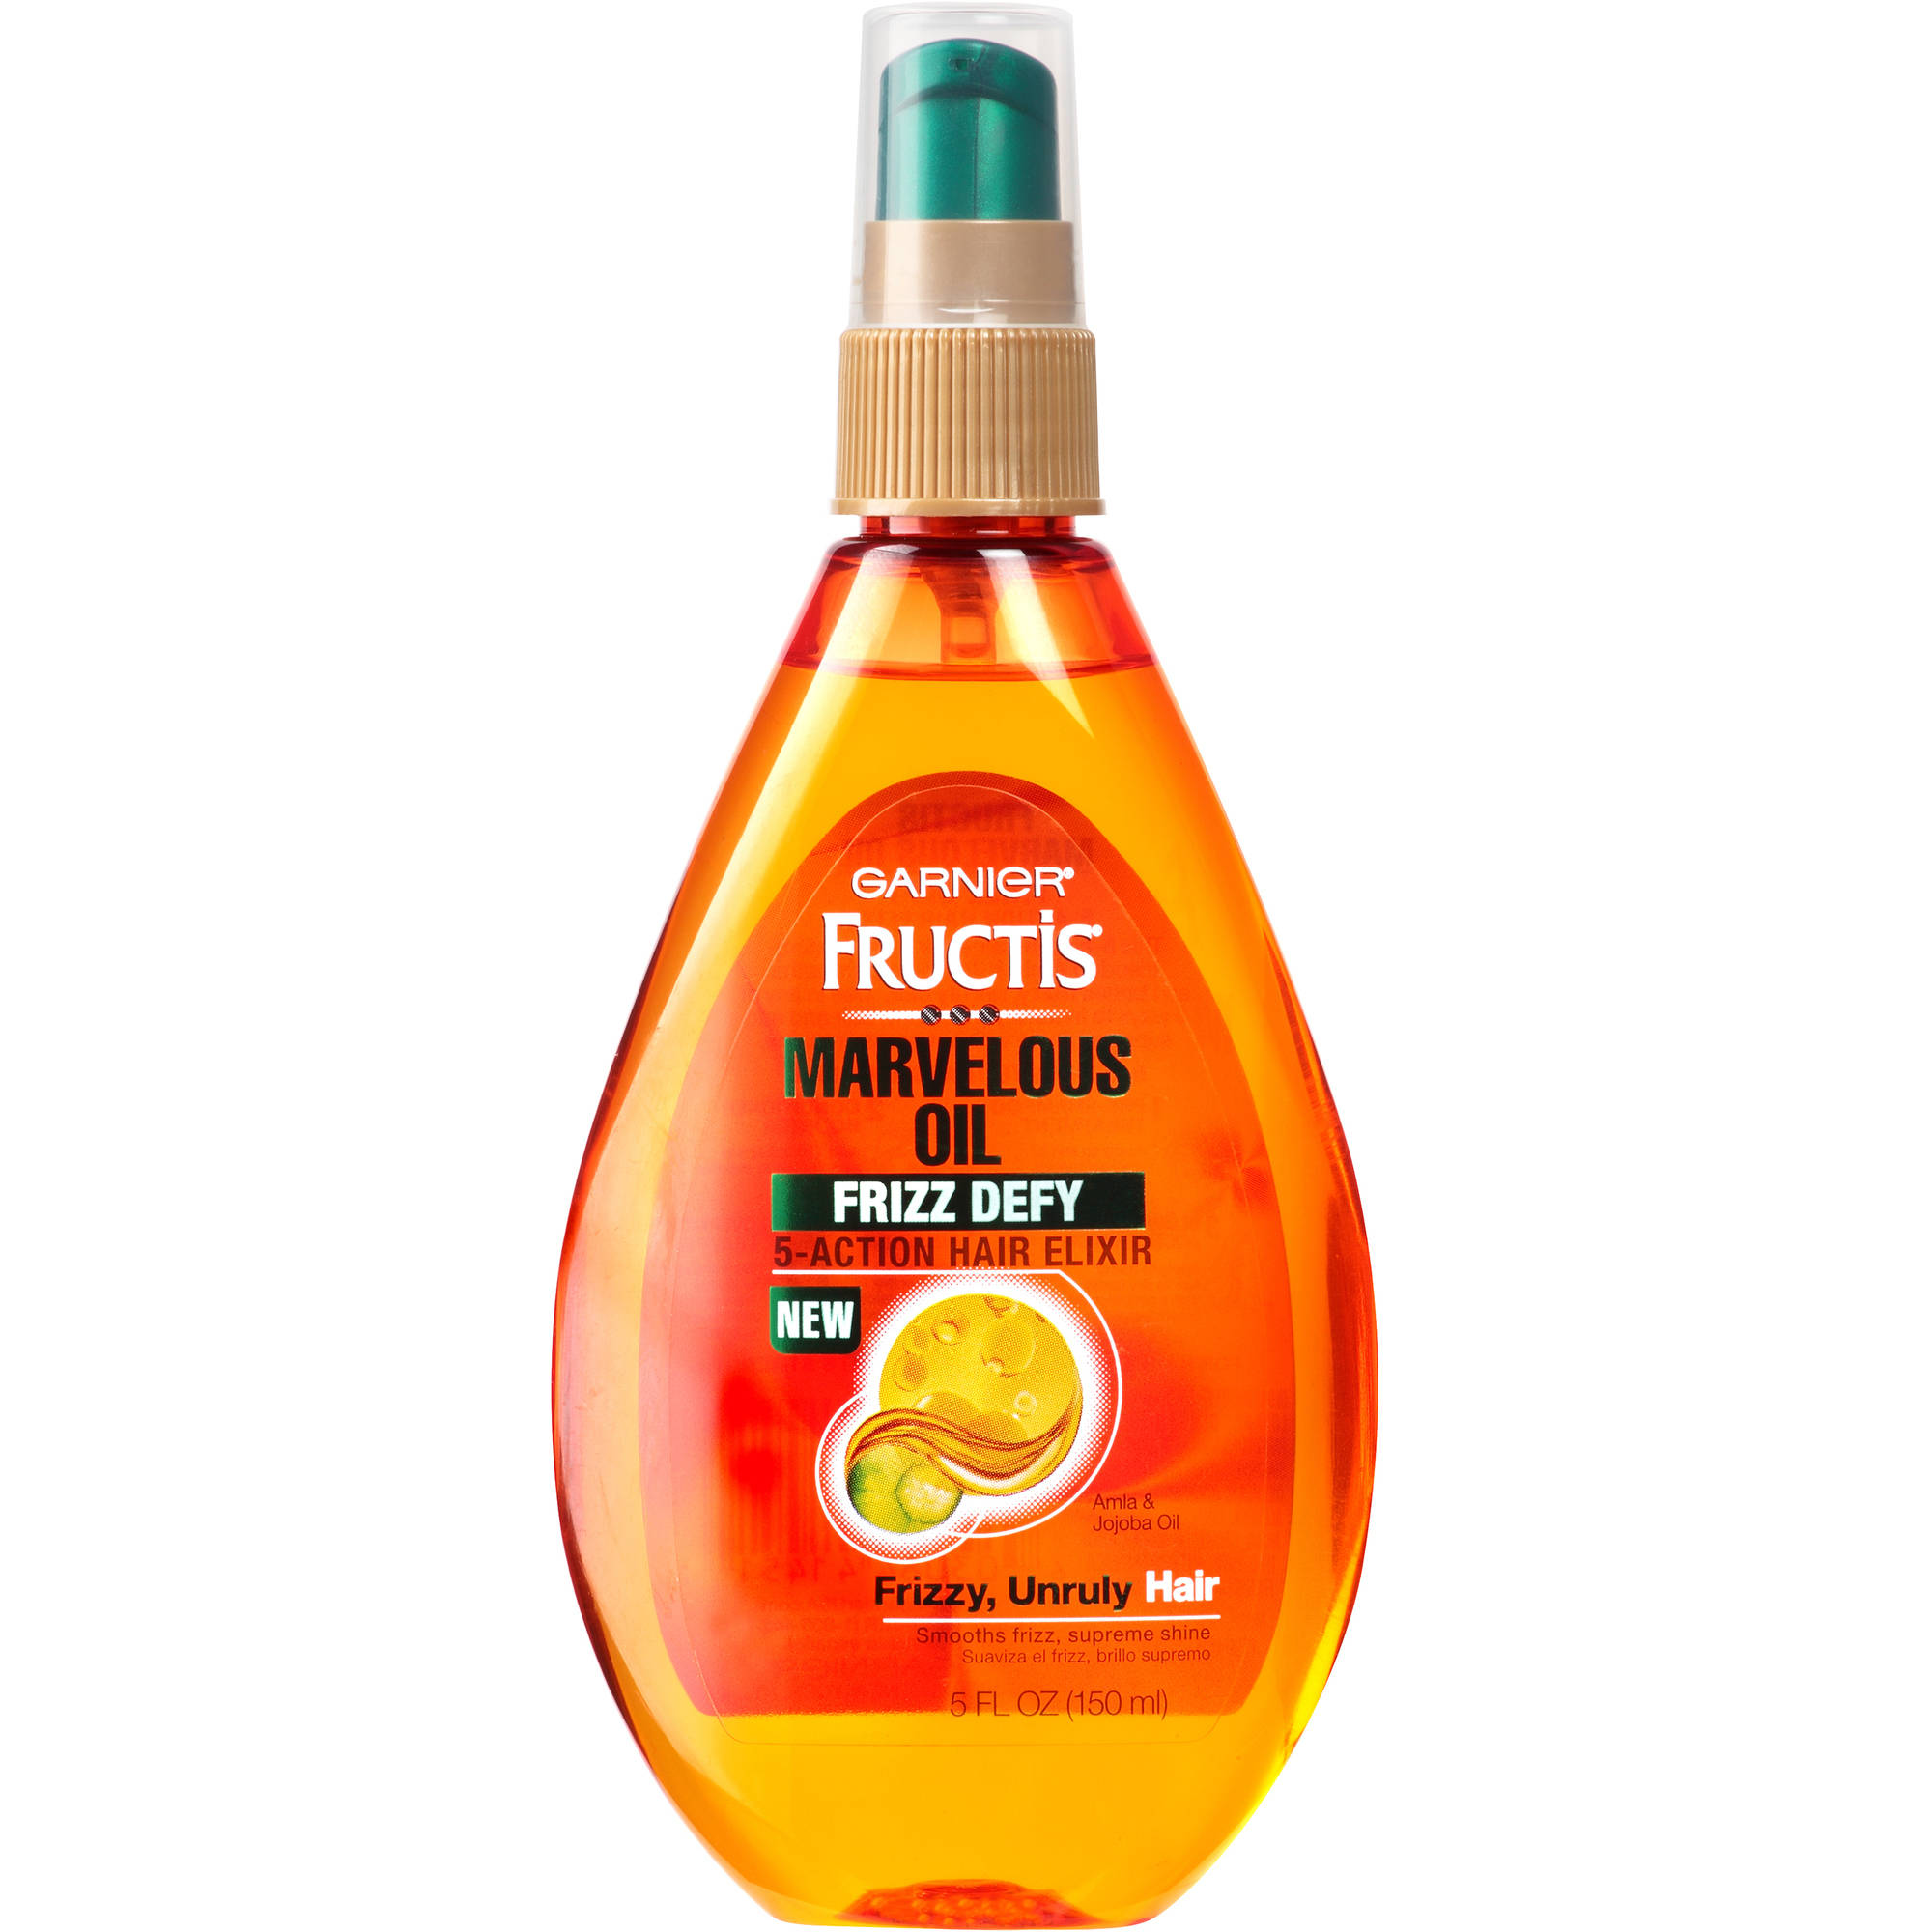 Garnier Fructis Marvelous Oil Frizz Defy 5-Action Hair Elixir, 5 fl oz